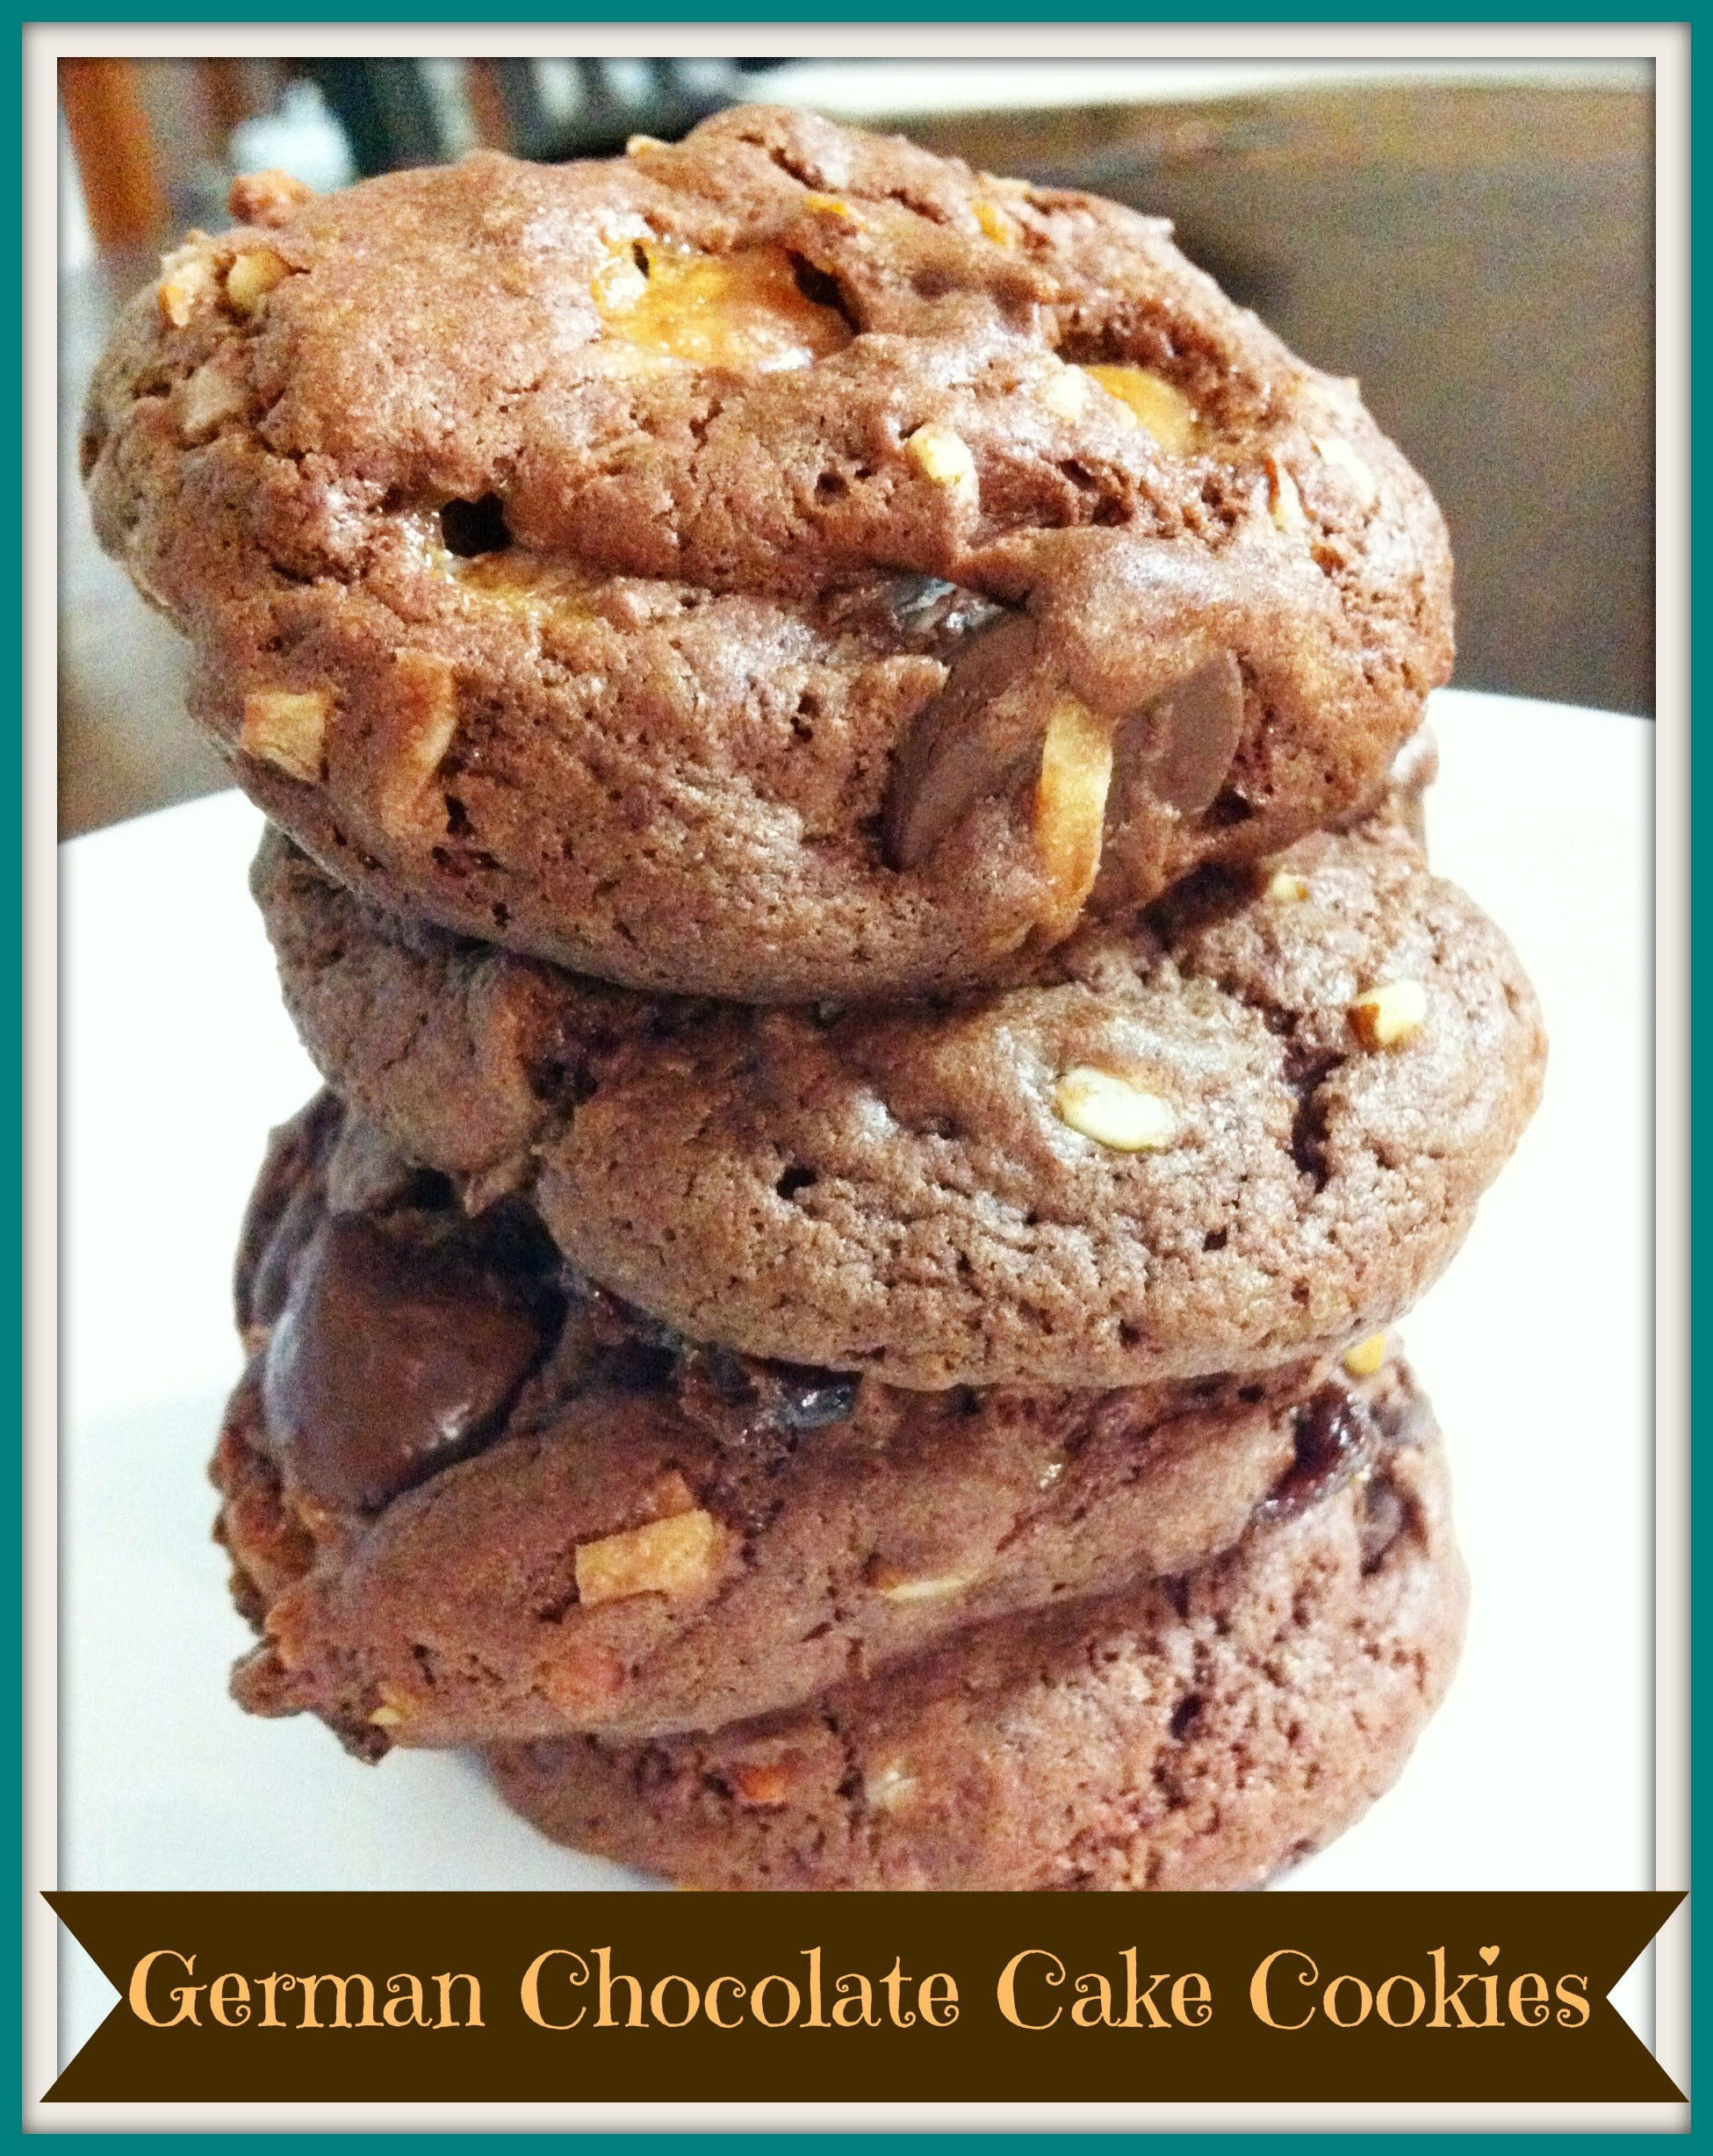 German Chocolate Cake Cookies  Cake Mix Cookies German Chocolate The Coers Family